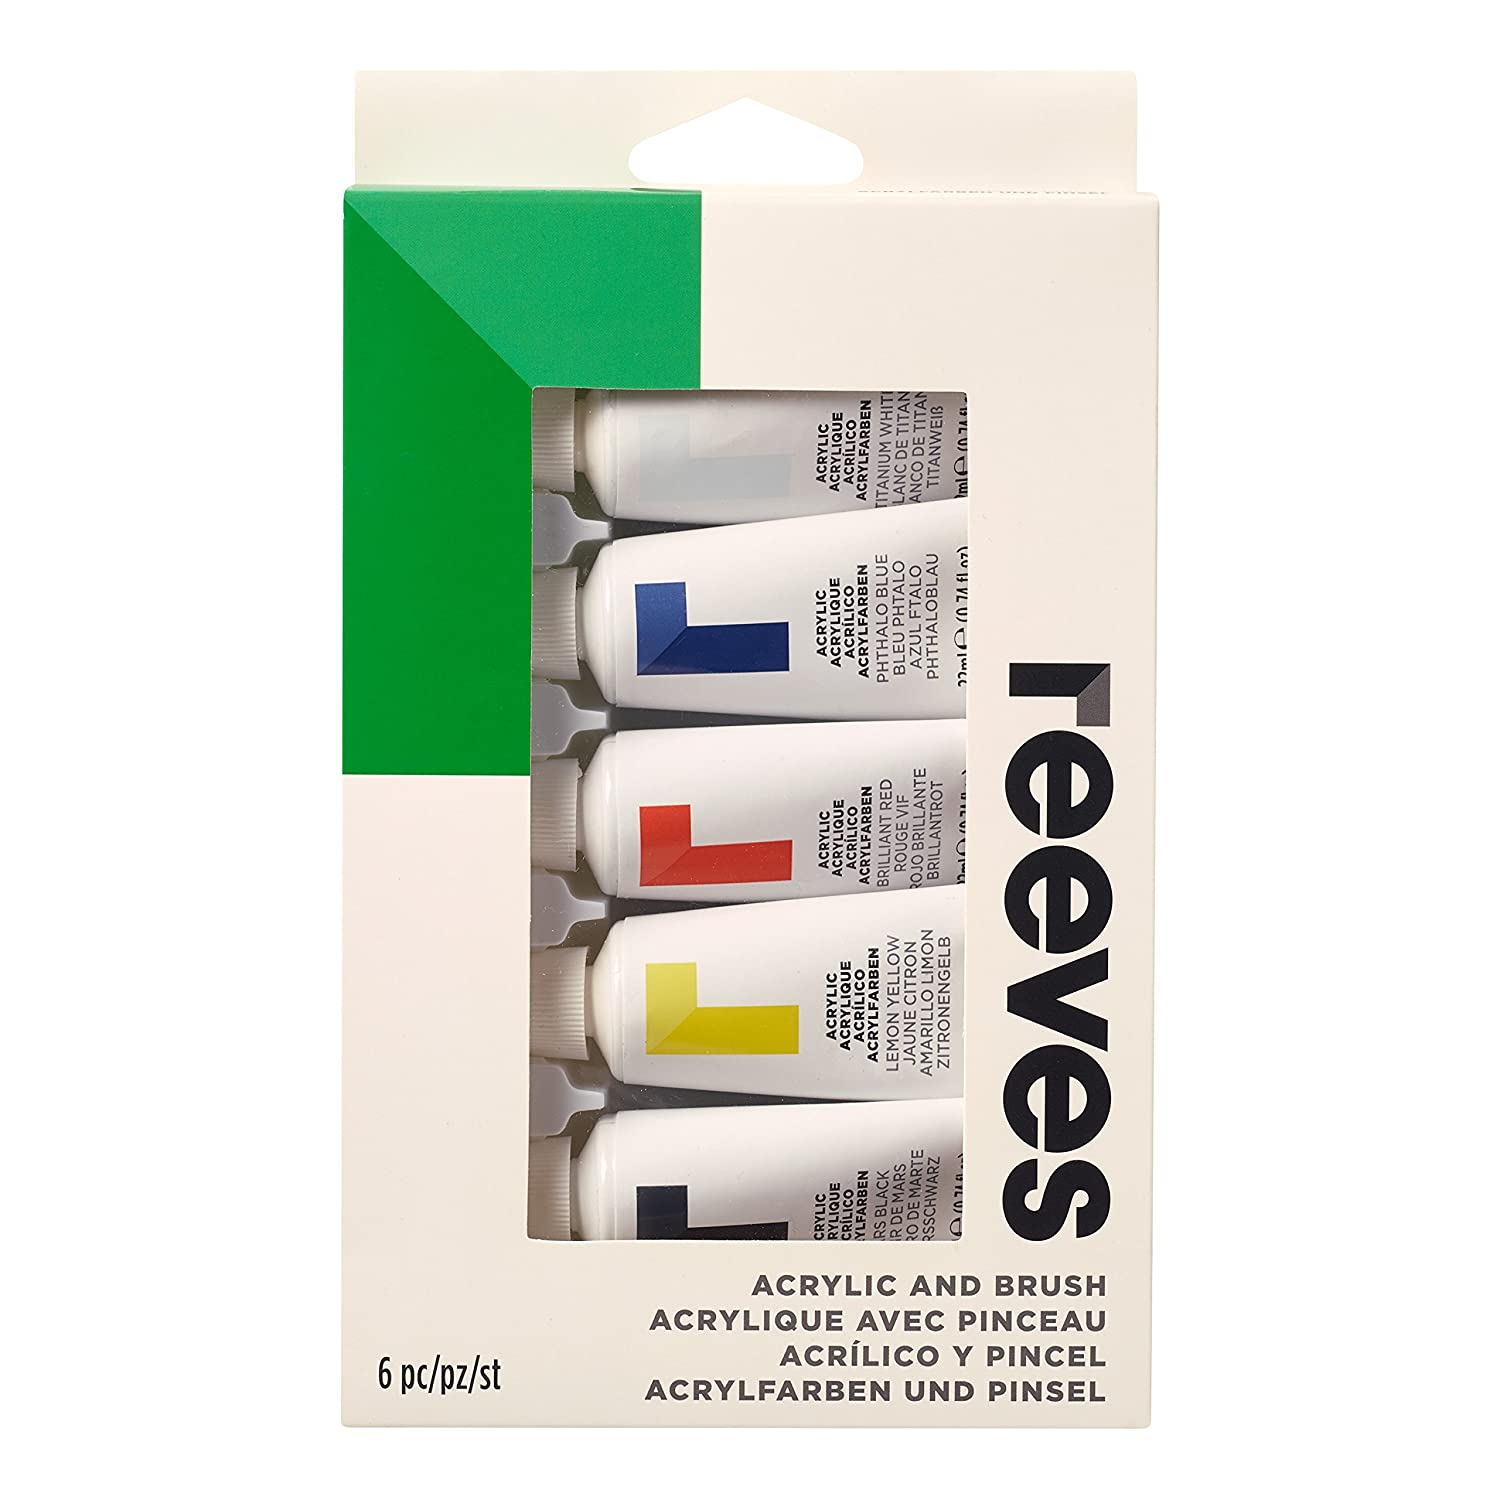 Reeves Acrylic Paint, Brush and Tube Set - 6 Pieces, multicolour ColArt 4910223